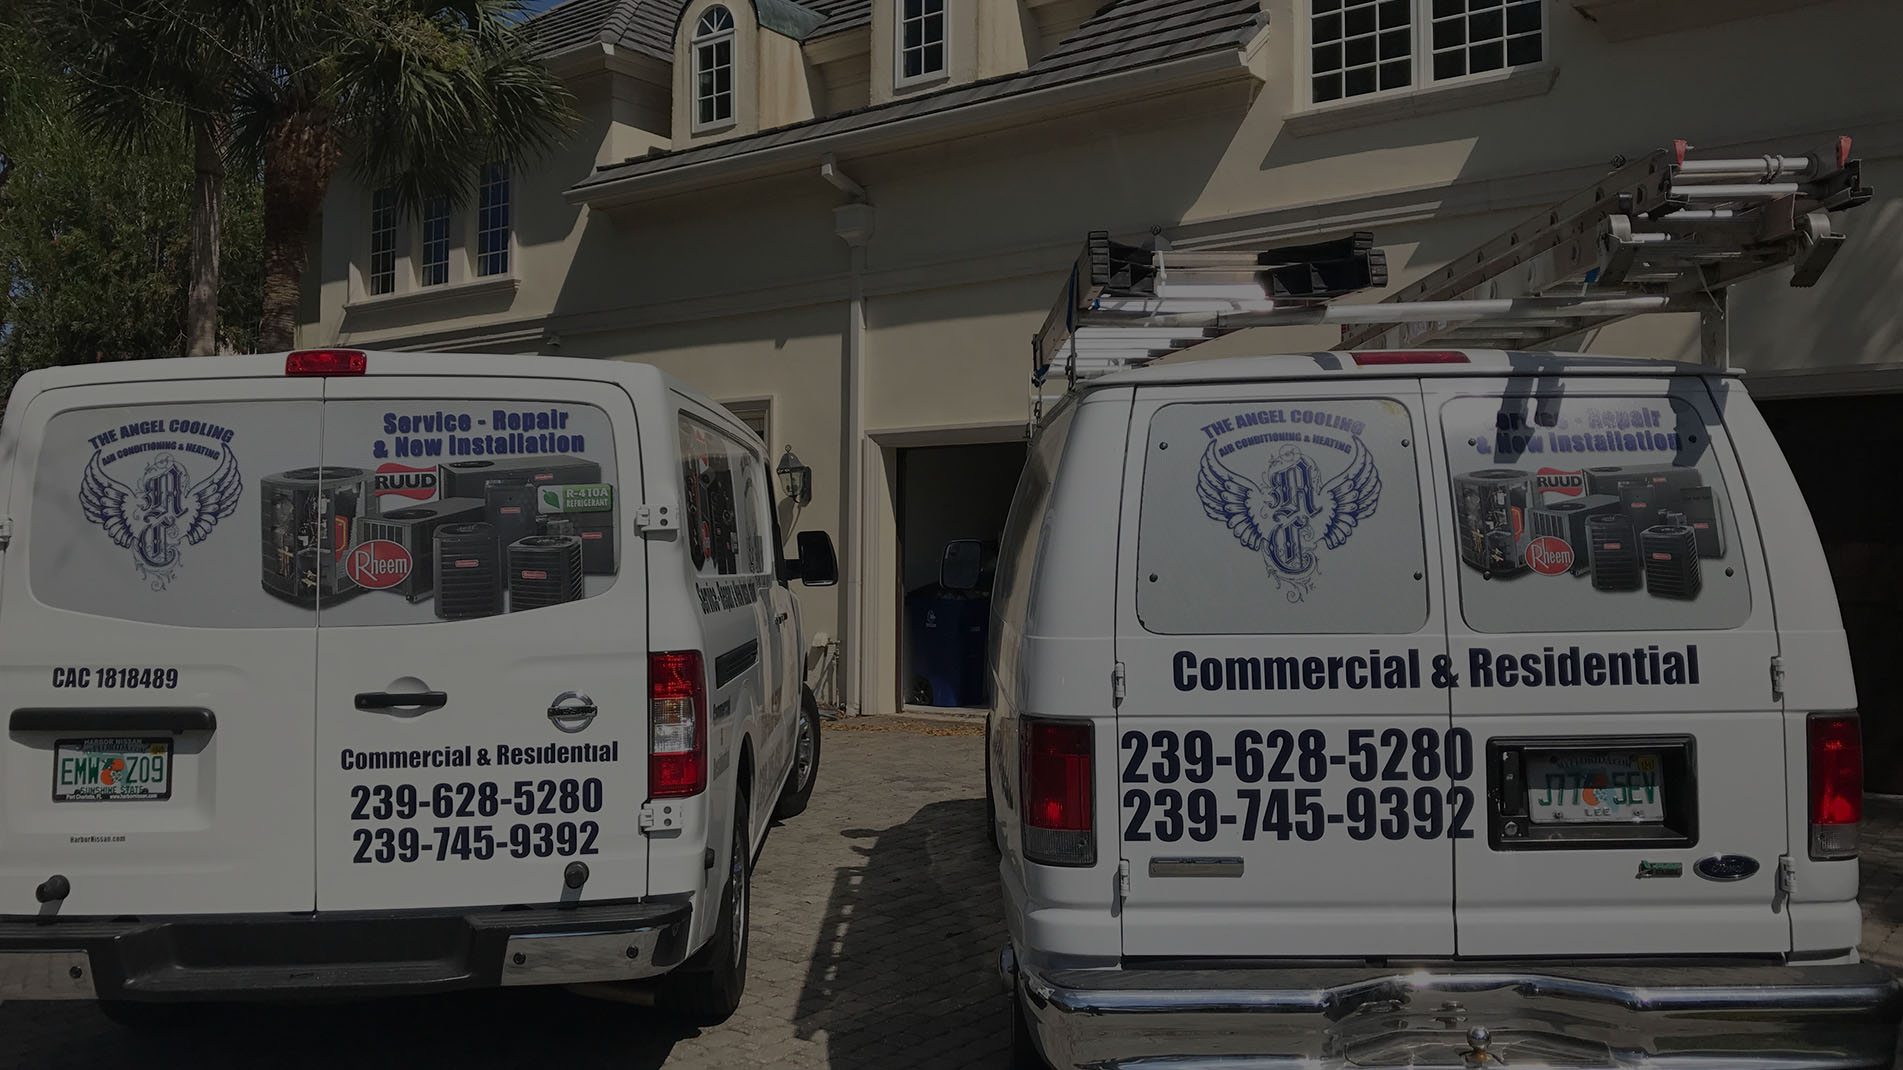 The Angel Cooling LLC HVAC Services